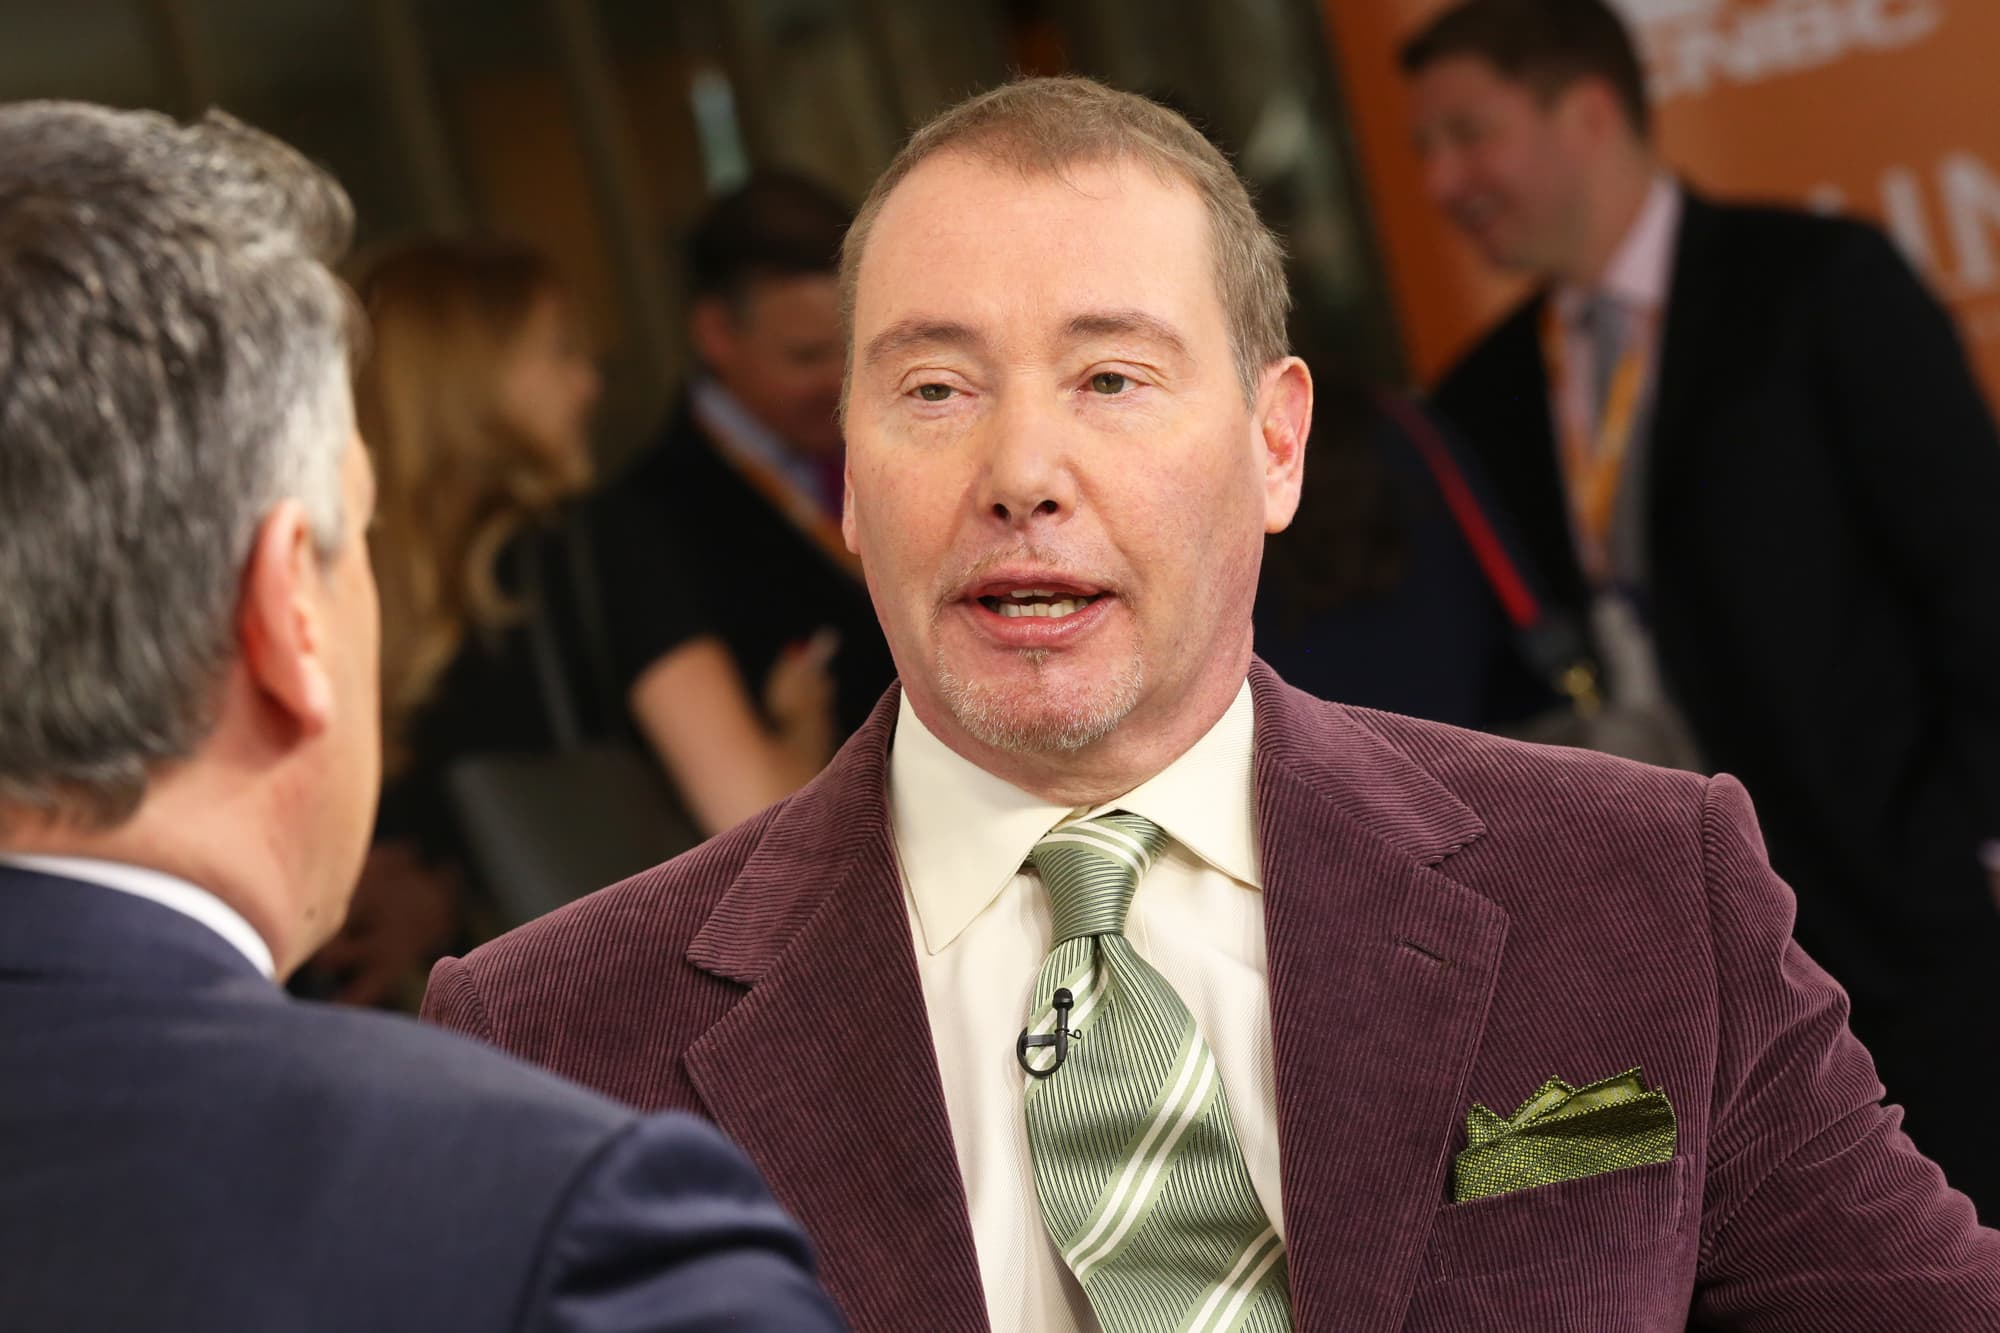 jeff-gundlach-says-stock-market-valuations-are-extraordinarily-high-supported-only-by-the-fed